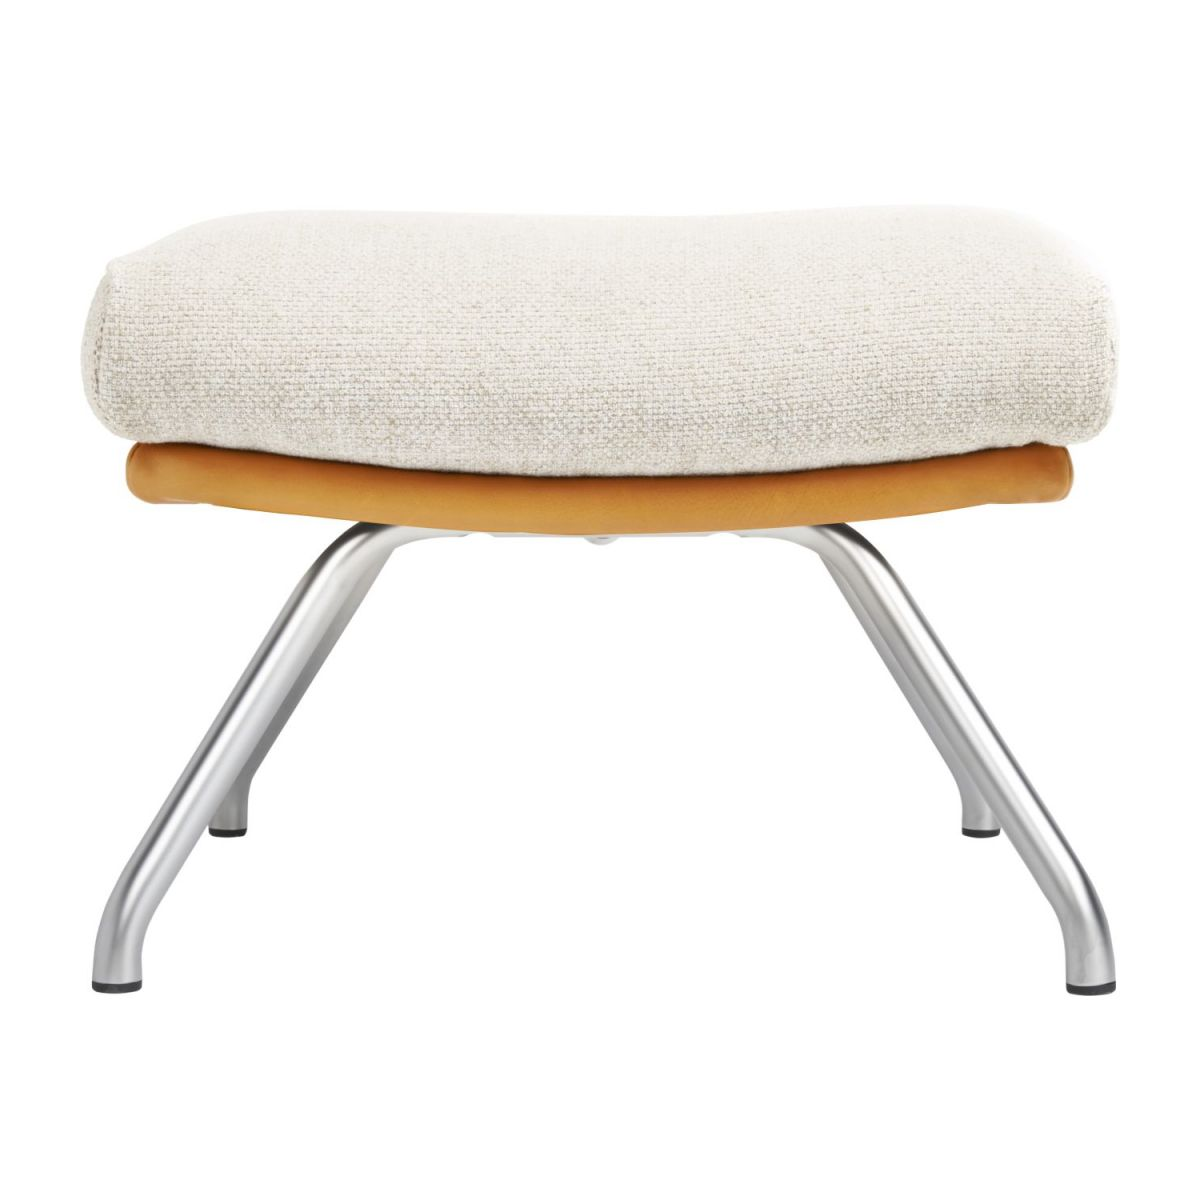 Footstool in Ancio fabric, nature et cuir marron with matt metal legs n°2